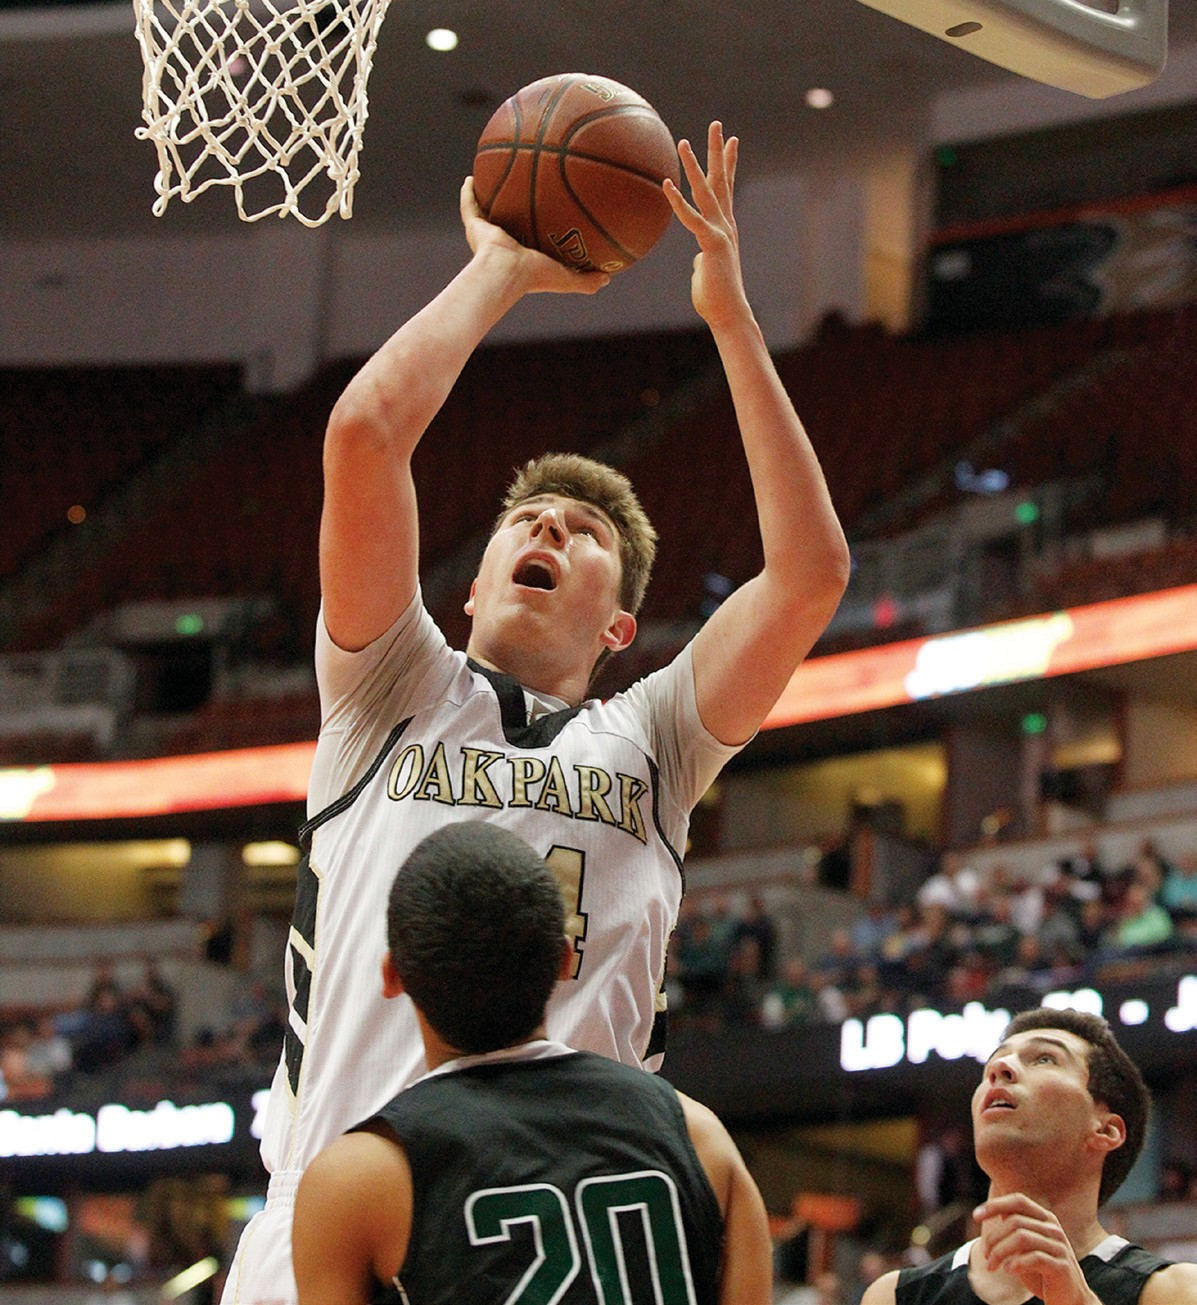 TOWERING ABOVE THE COMPETITION—Riley Battin of Oak Park is Ventura County's all-time leading scorer in boys' basketball. RICHARD GILLARD/Acorn Newspapers